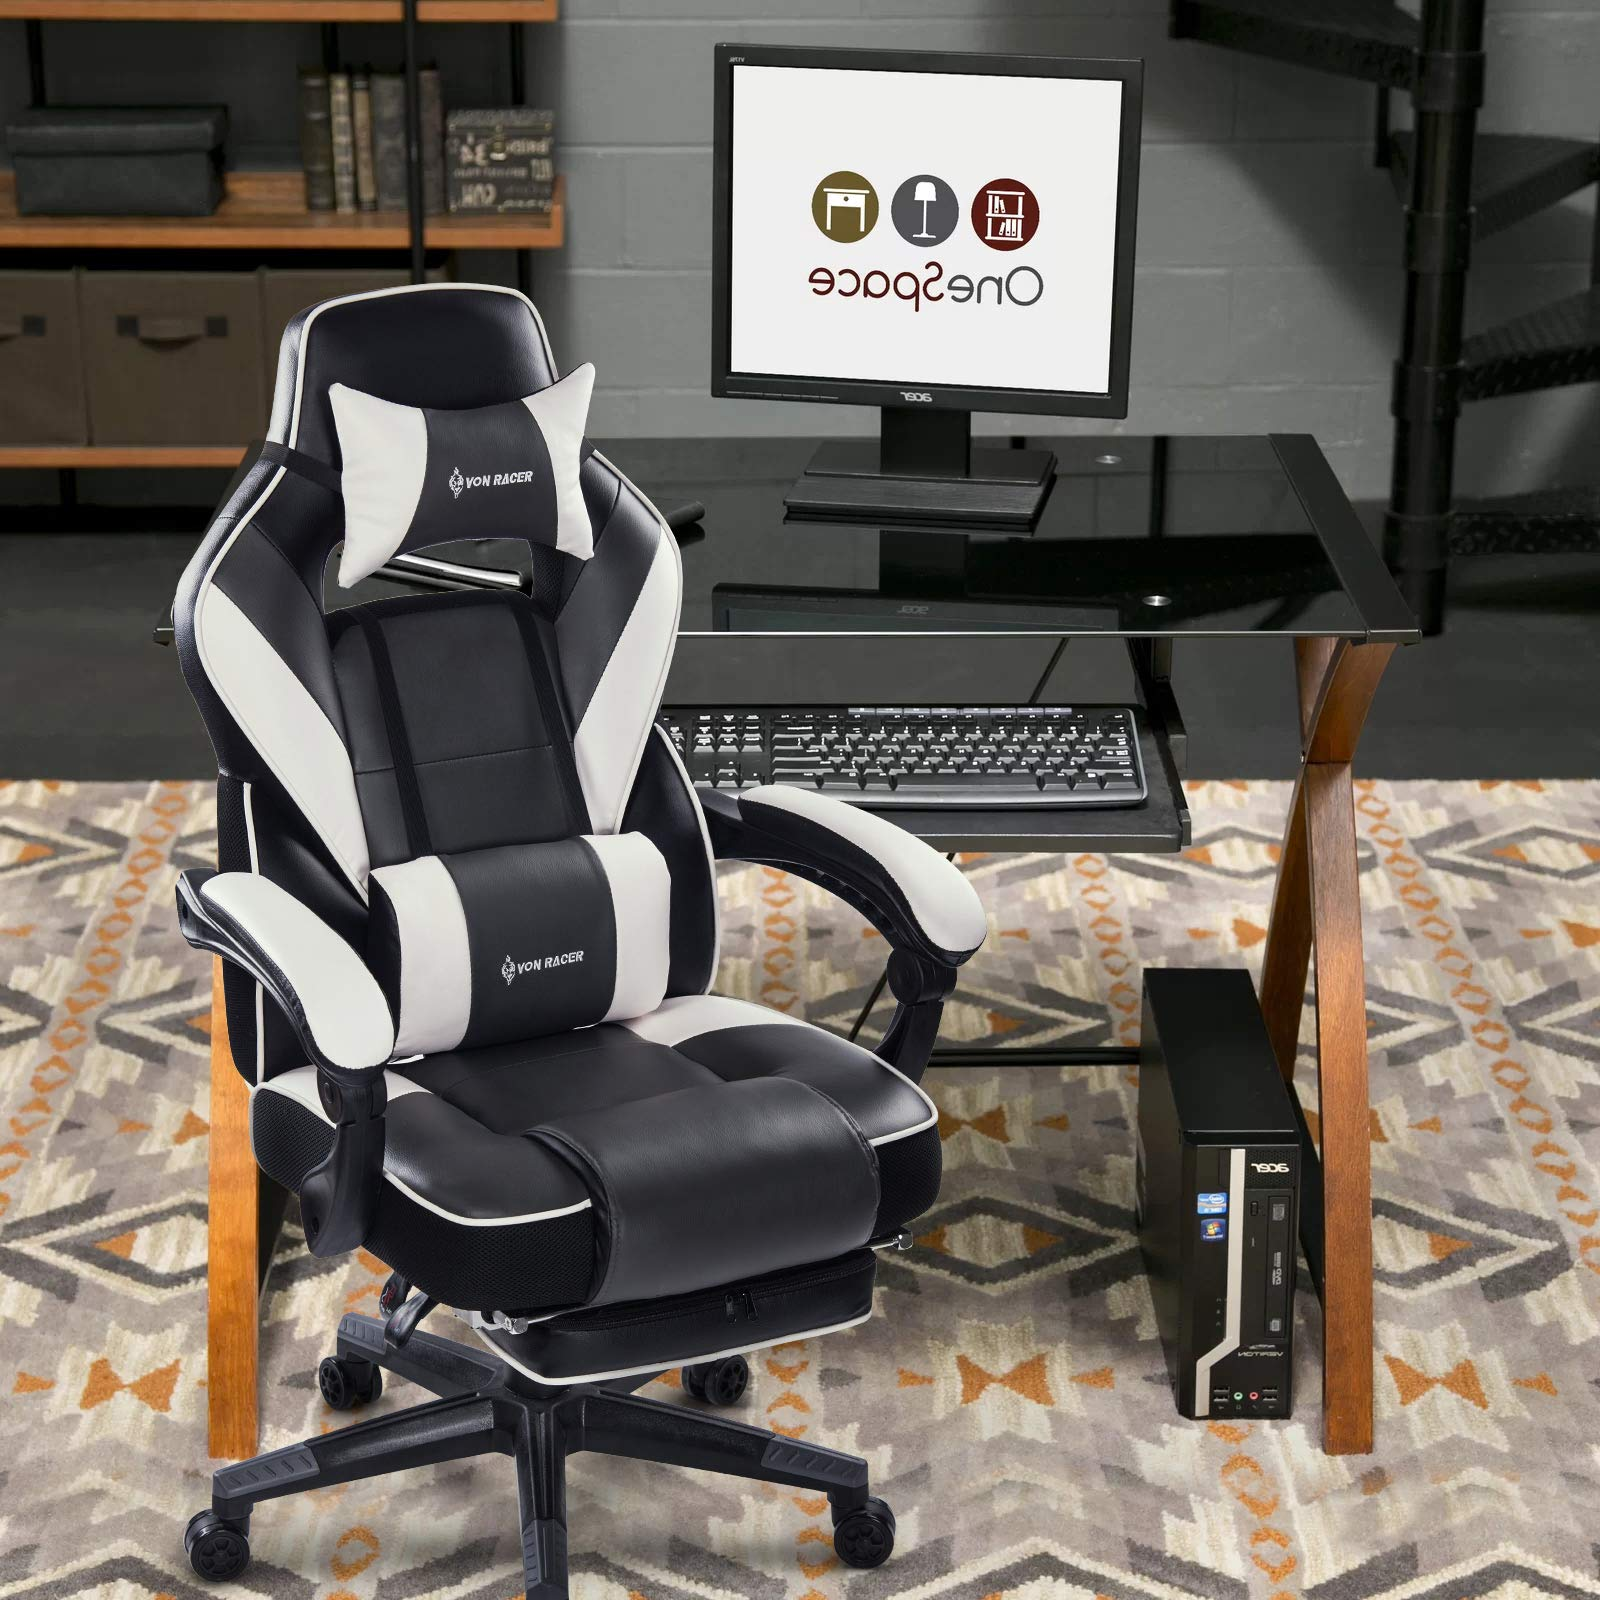 VON RACER Massage Reclining Gaming Chair - Ergonomic High-Back Racing Computer Desk Office Chair with Retractable Footrest and Adjustable Lumbar Cushion (Gray) by VON RACER (Image #7)